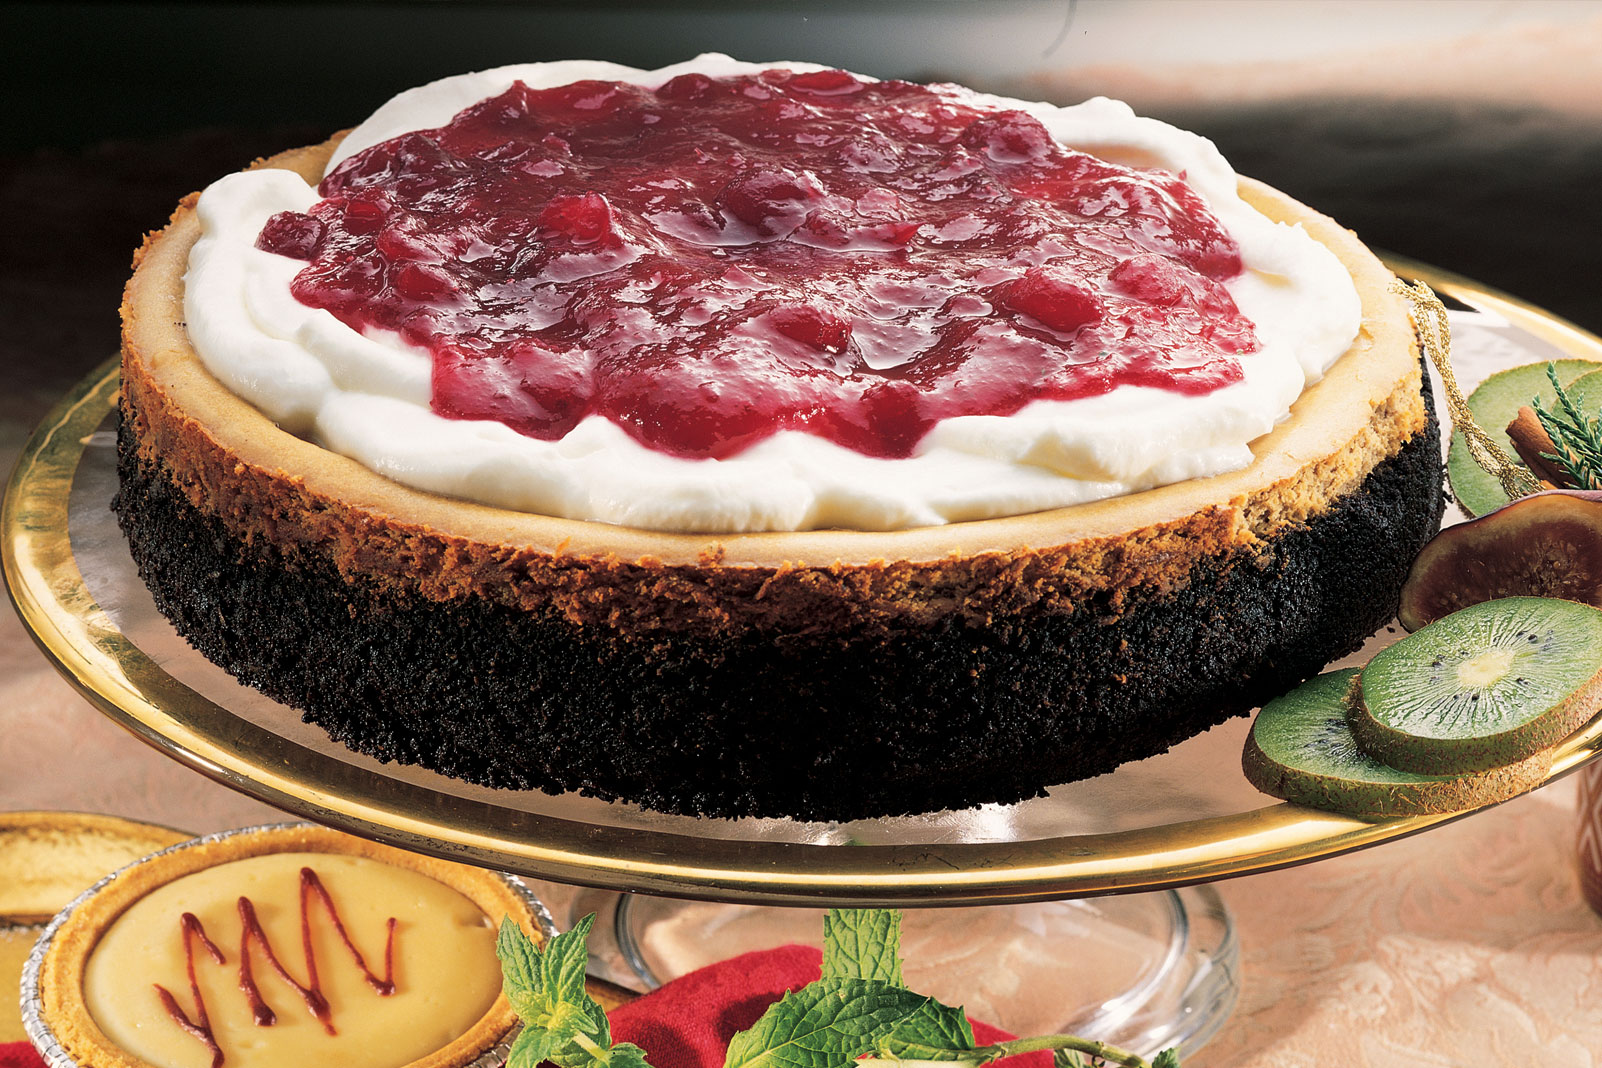 Chocolate Espresso Cheesecake with Cranberry Topping